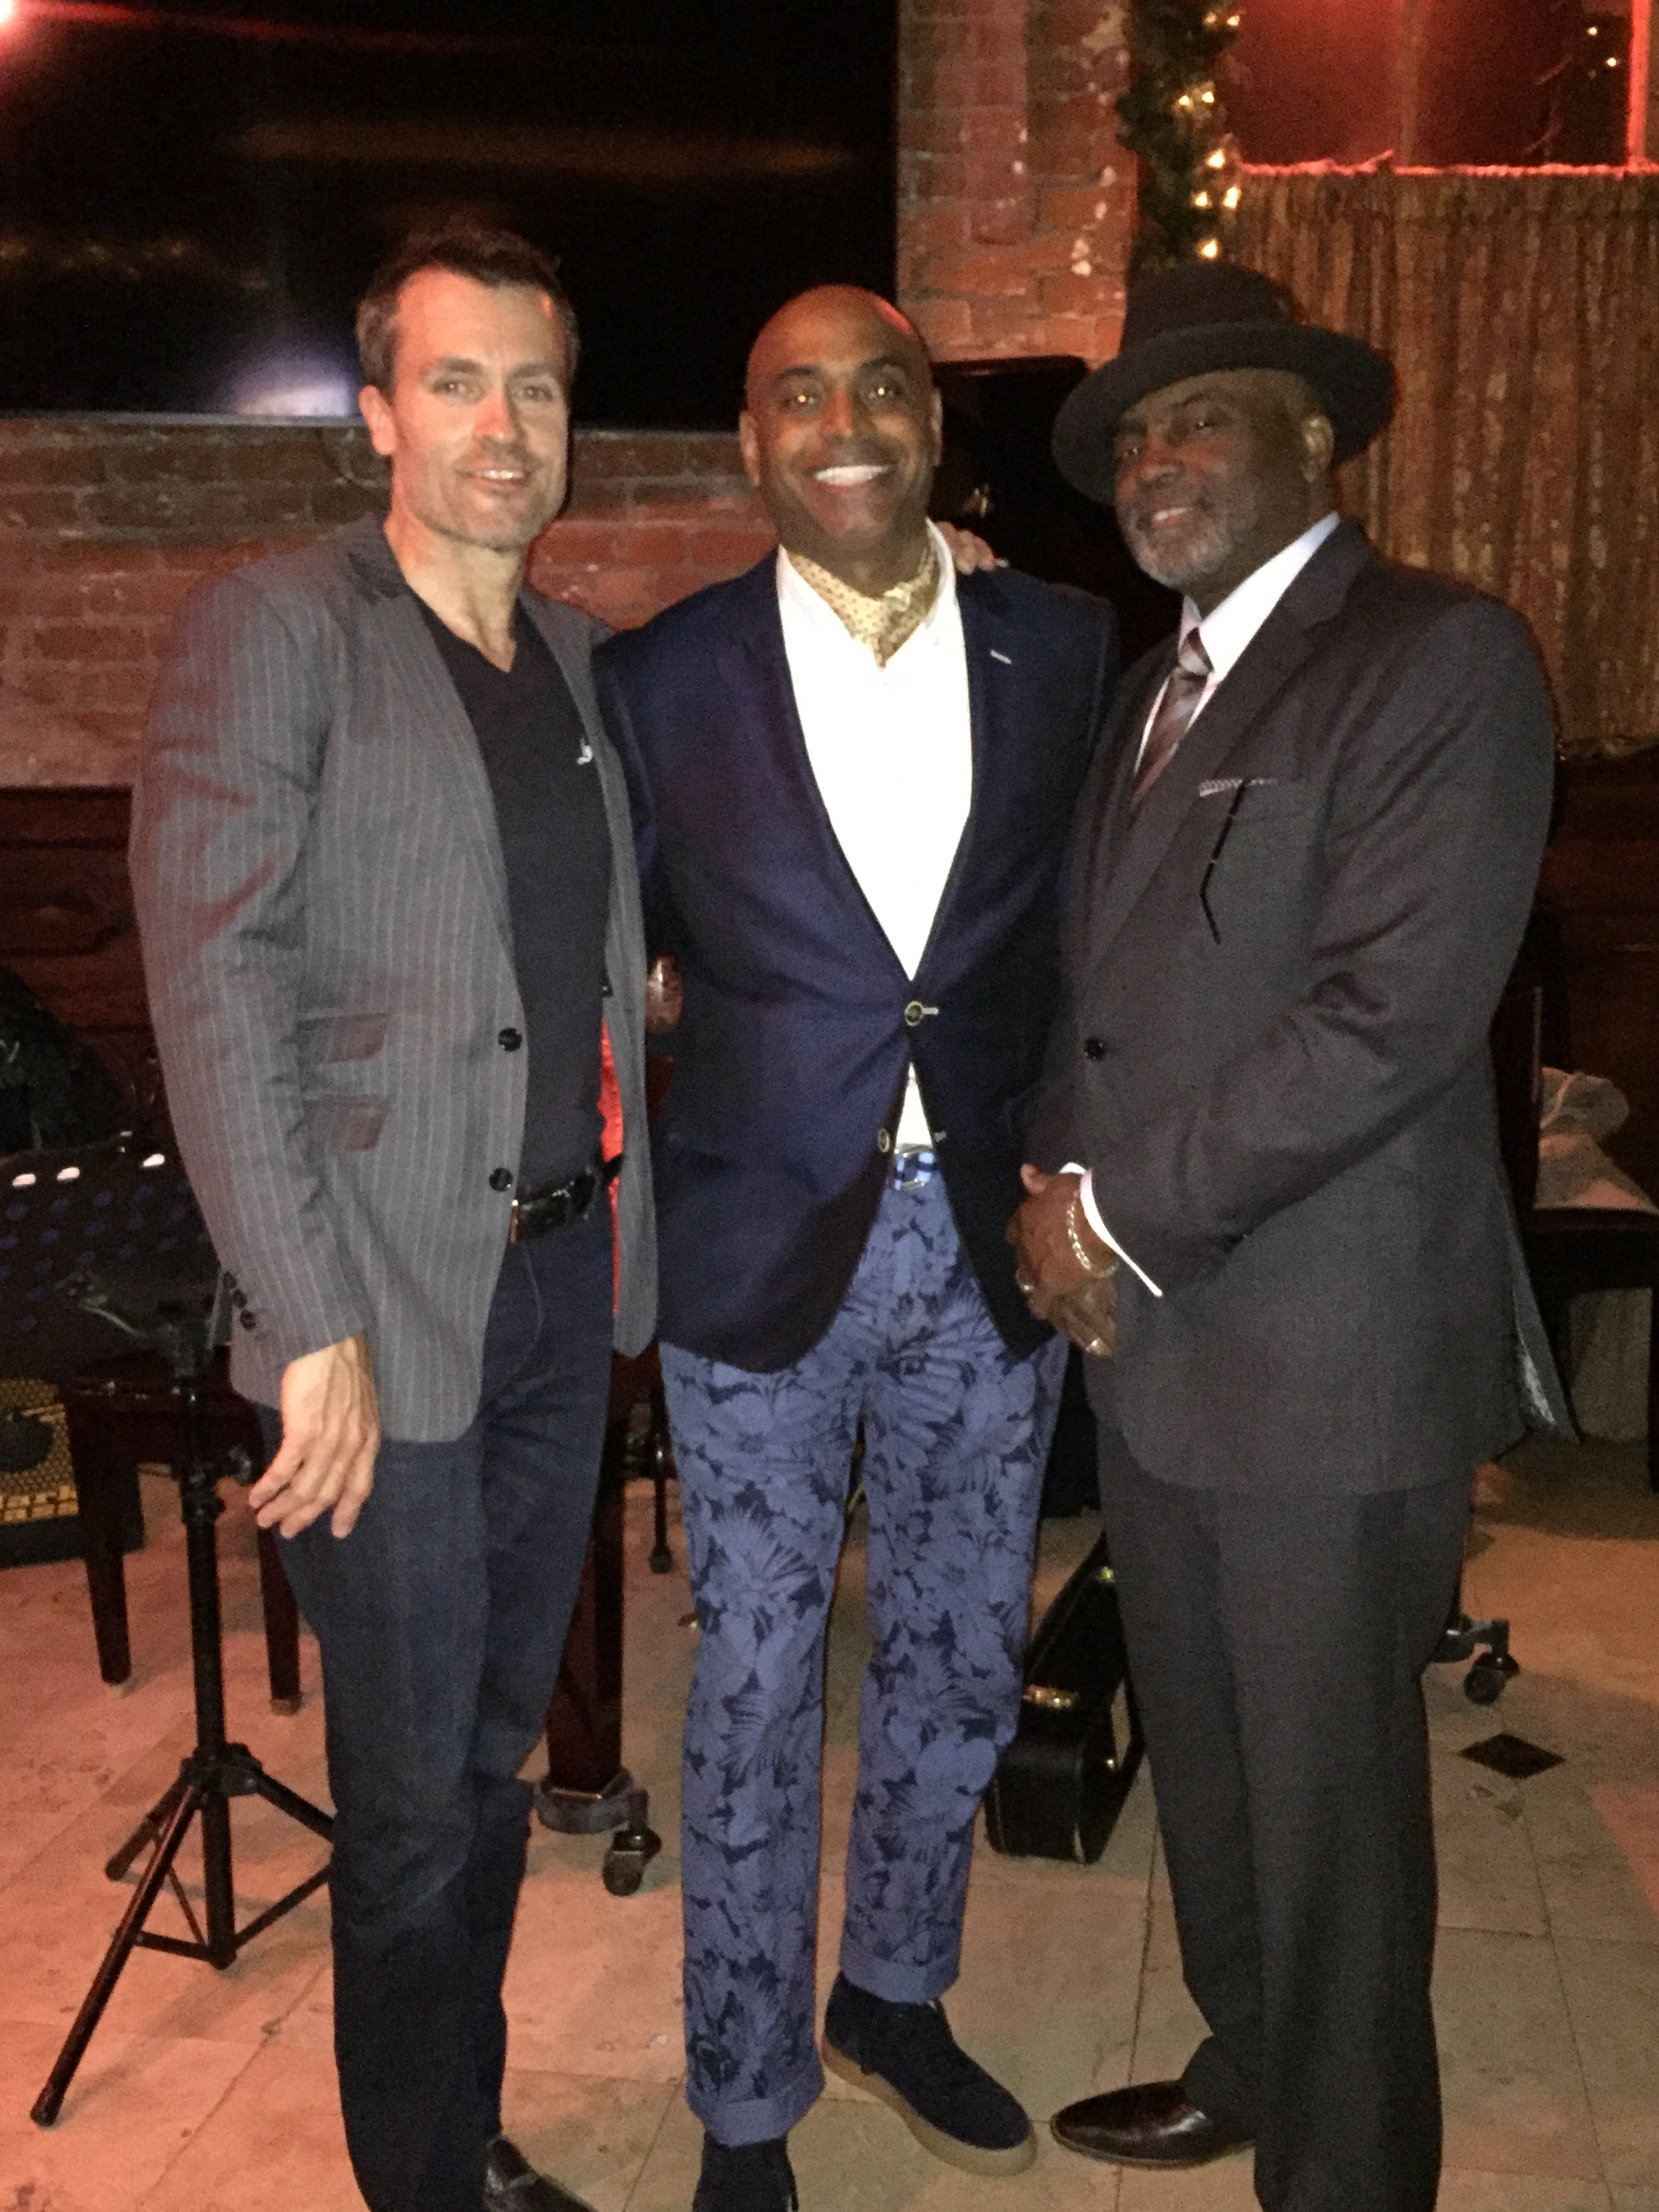 Paulie Piano, Jonny Styles and Dapper Don representing Luca Falcone Custom Clothiers!